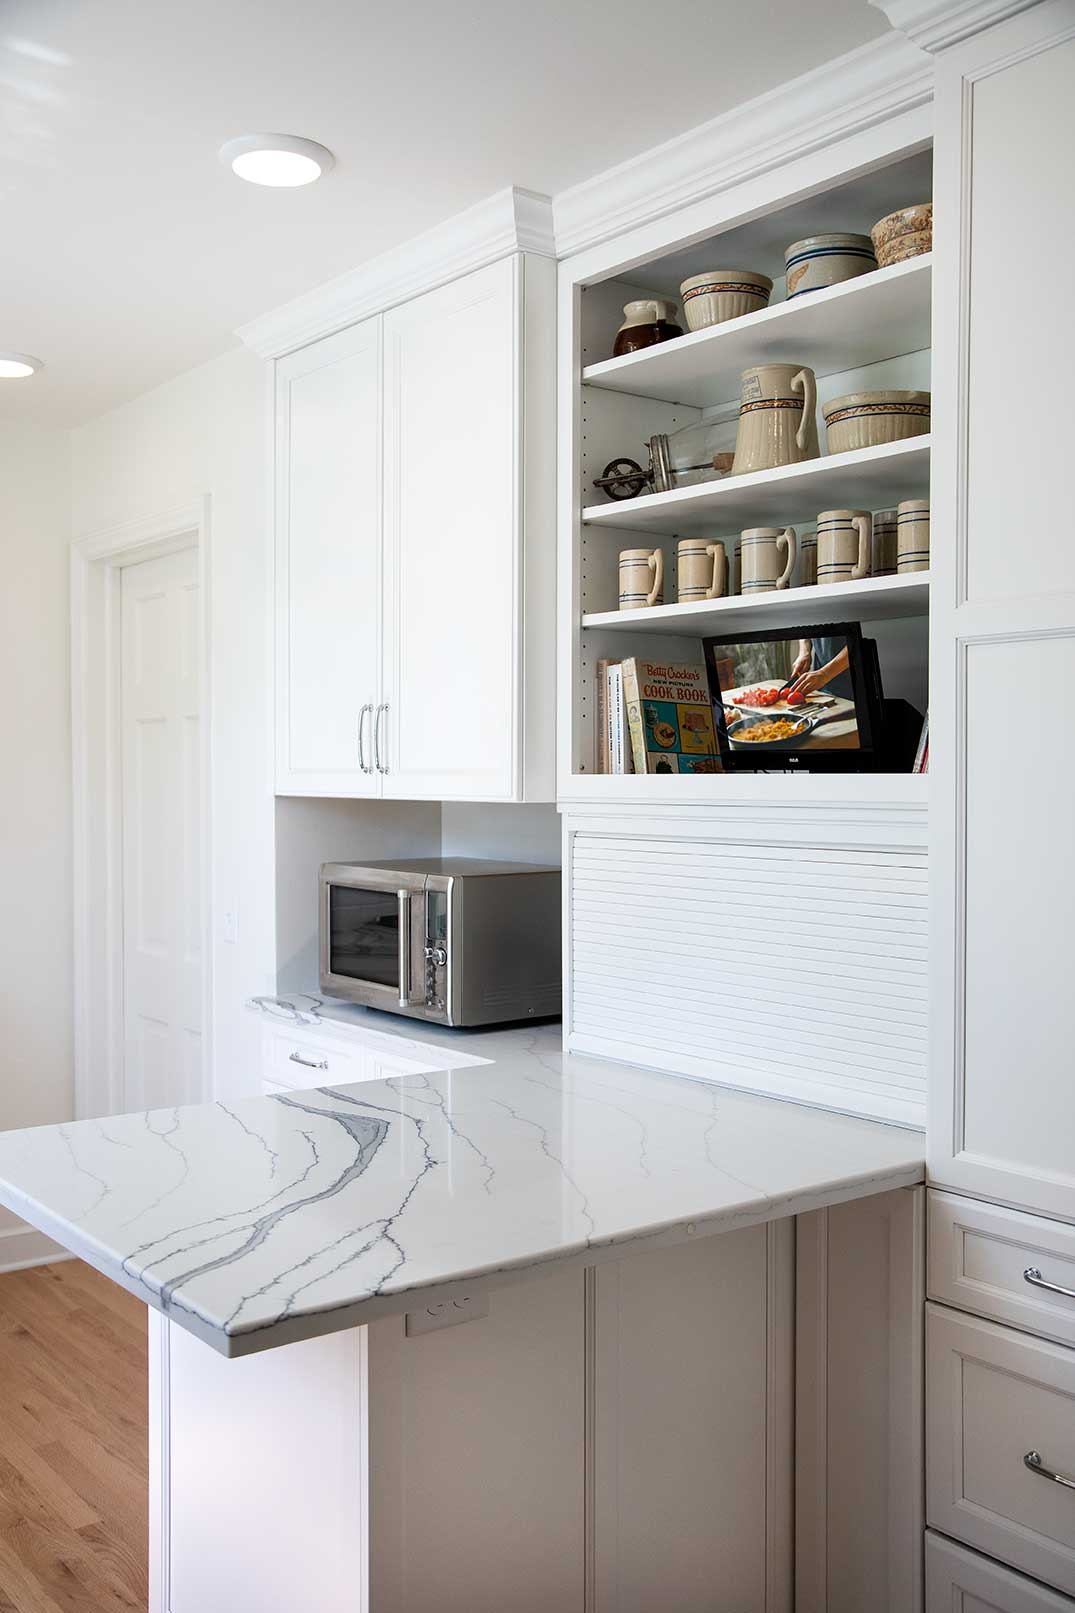 Appliance Garage and Open Shelving